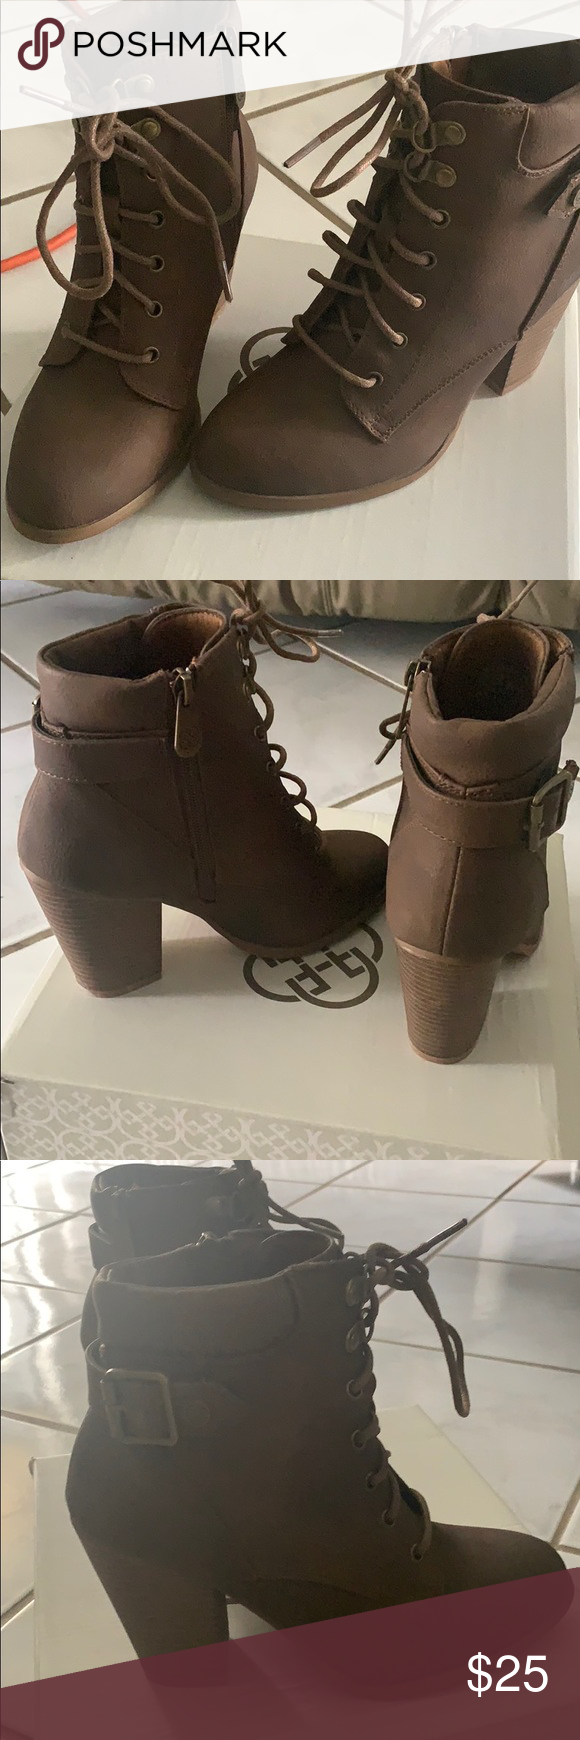 Daisy Fuentes Brown Boots – Get the lowest price on your favorite brands at poshmark.